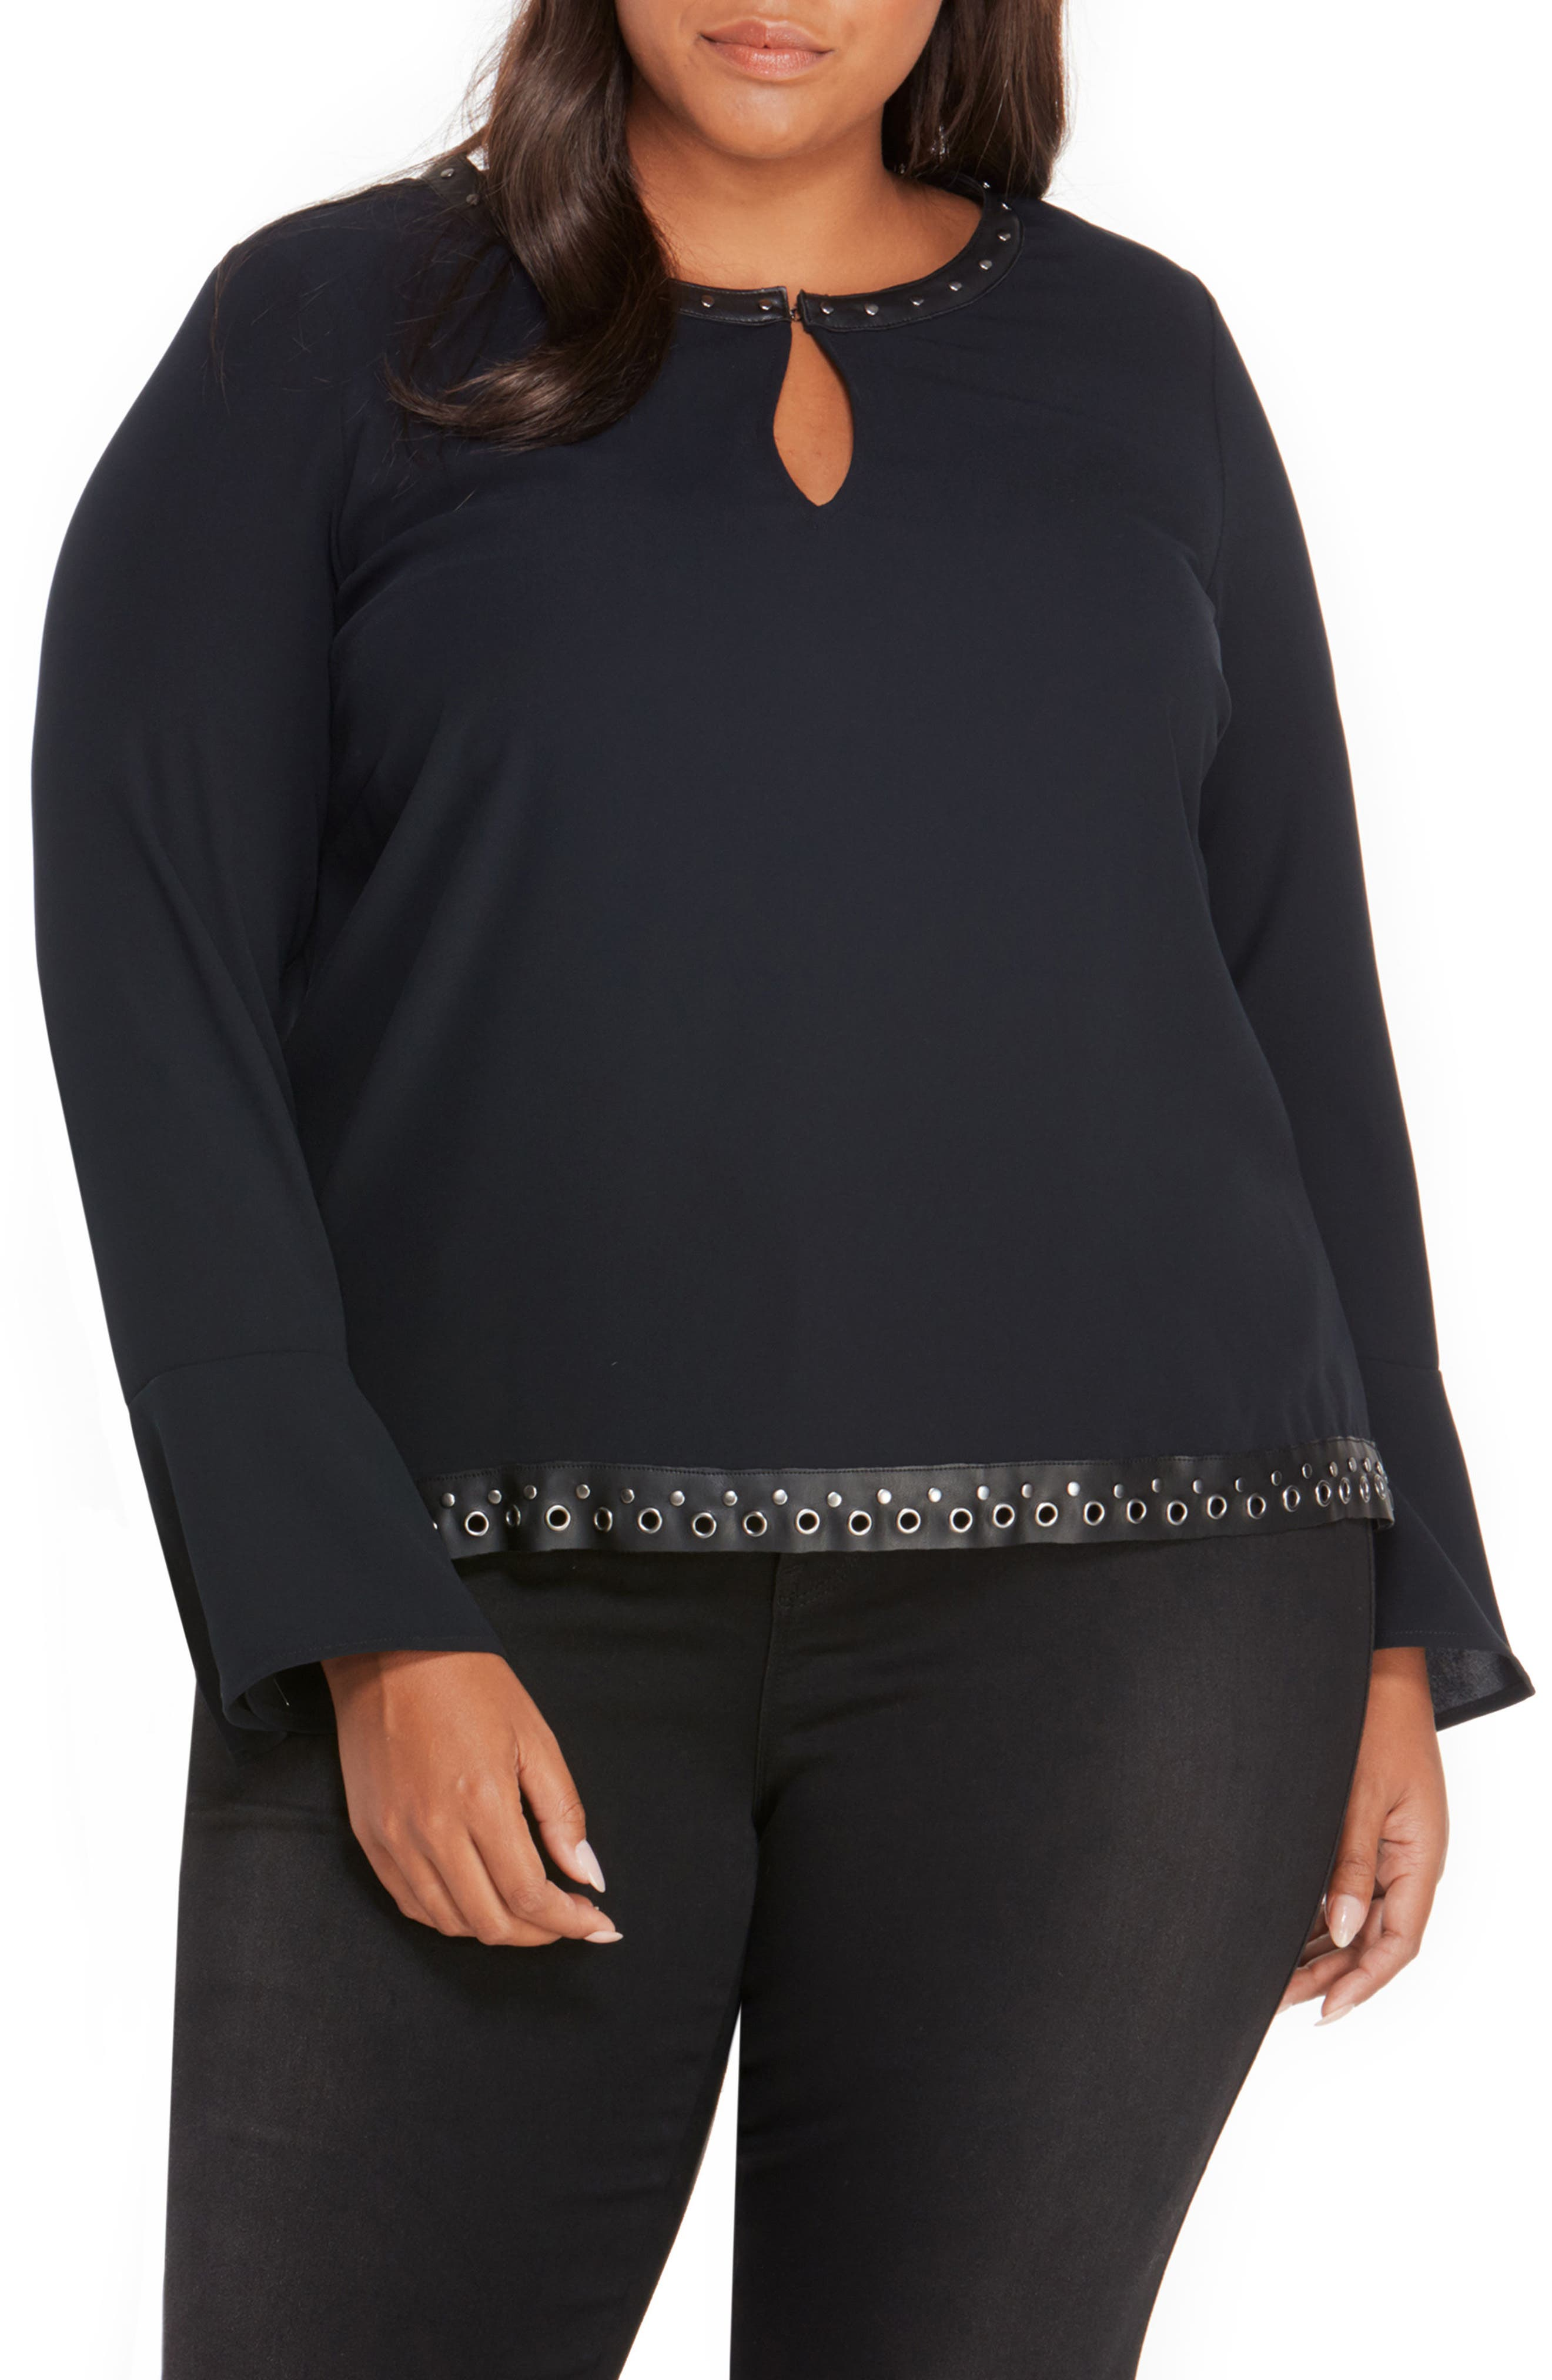 Alternate Image 1 Selected - Rebel Wilson x Angels Studded Faux Leather Trim Top (Plus Size)